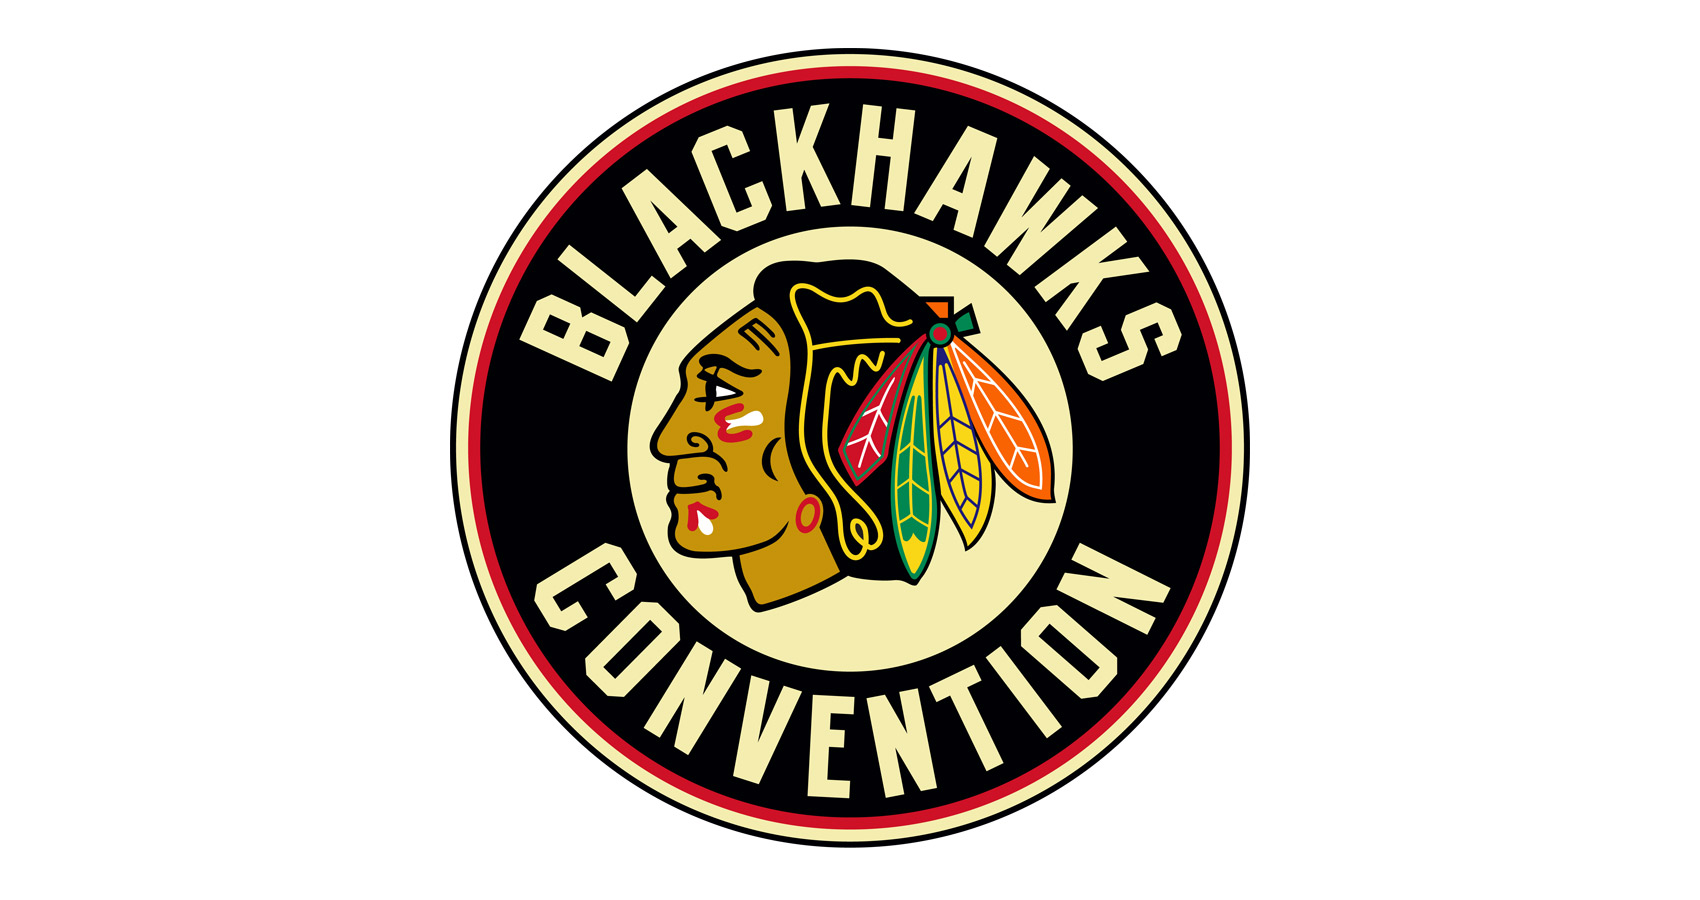 BlackhawksConventionLogo